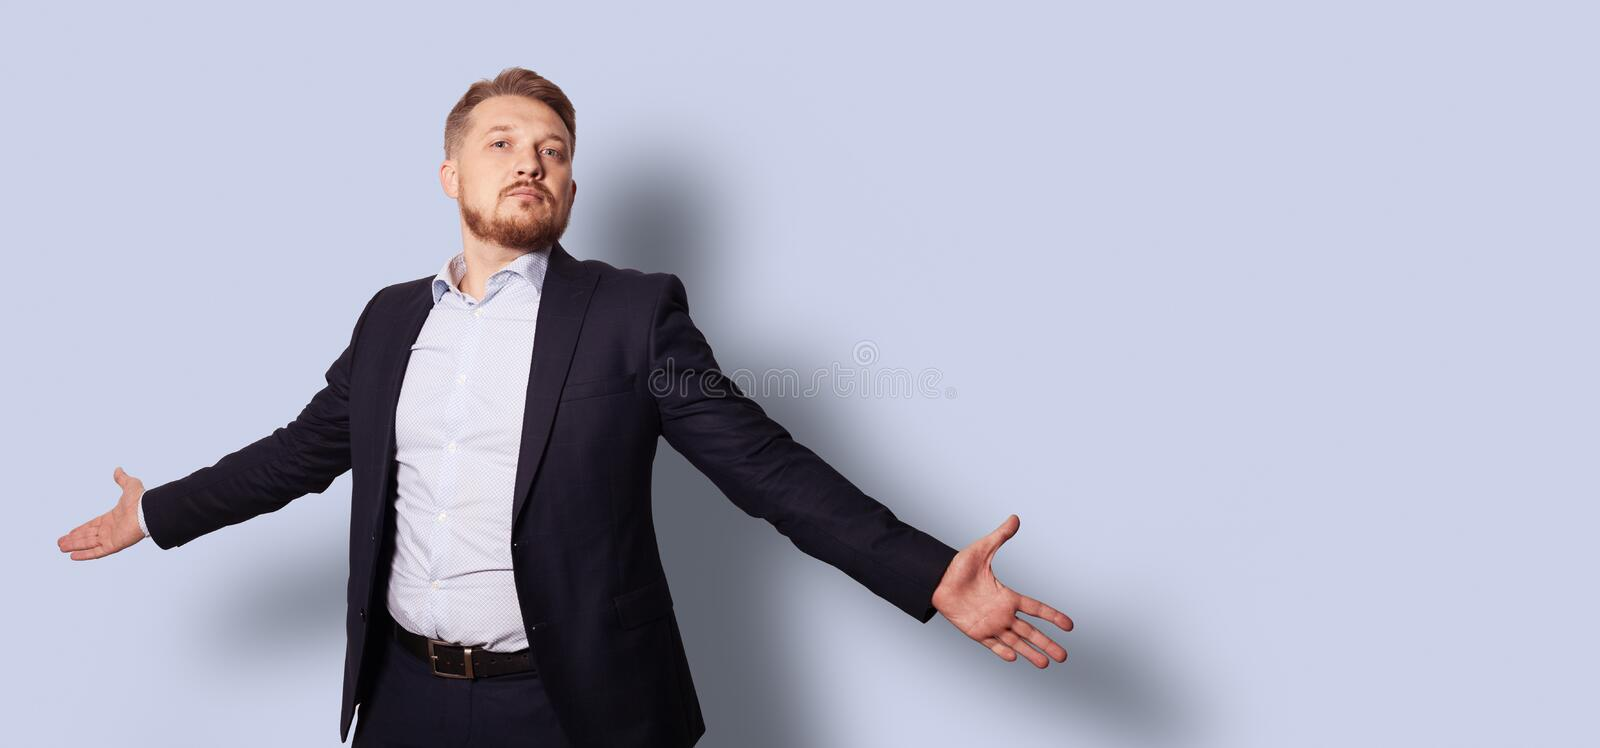 Handsome bearded man with open arms in a suit without a tie. Studio portrait over gray blue background stock photos